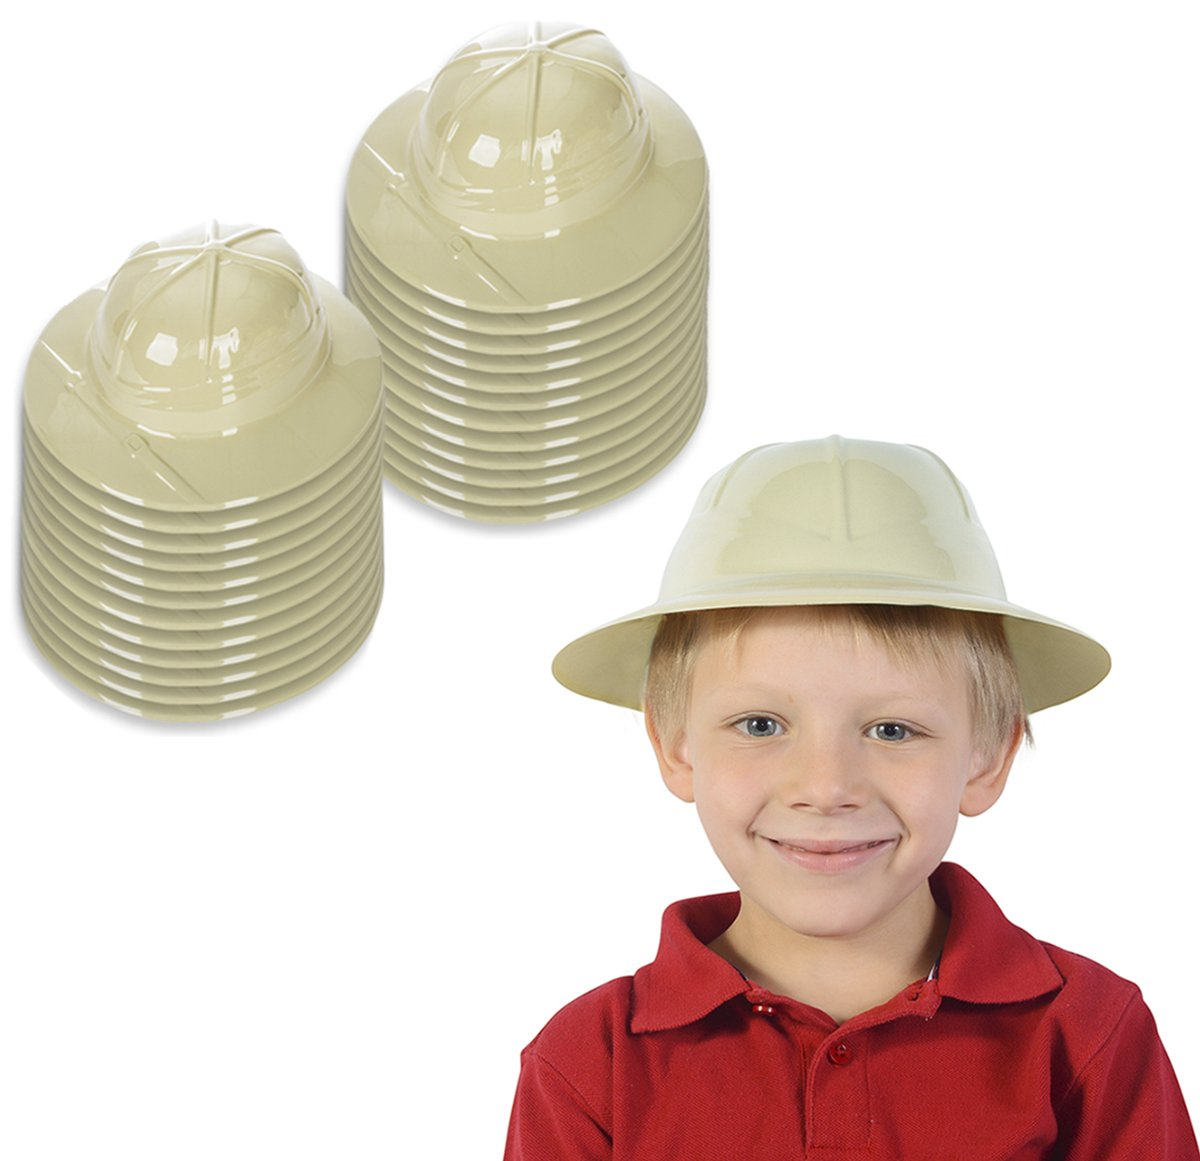 Safari Hat Party Favor - Jungle Party Supplies - Pith Helmets for Kids - Safari Party Supplies (24 Pack) by Funny Party Hats